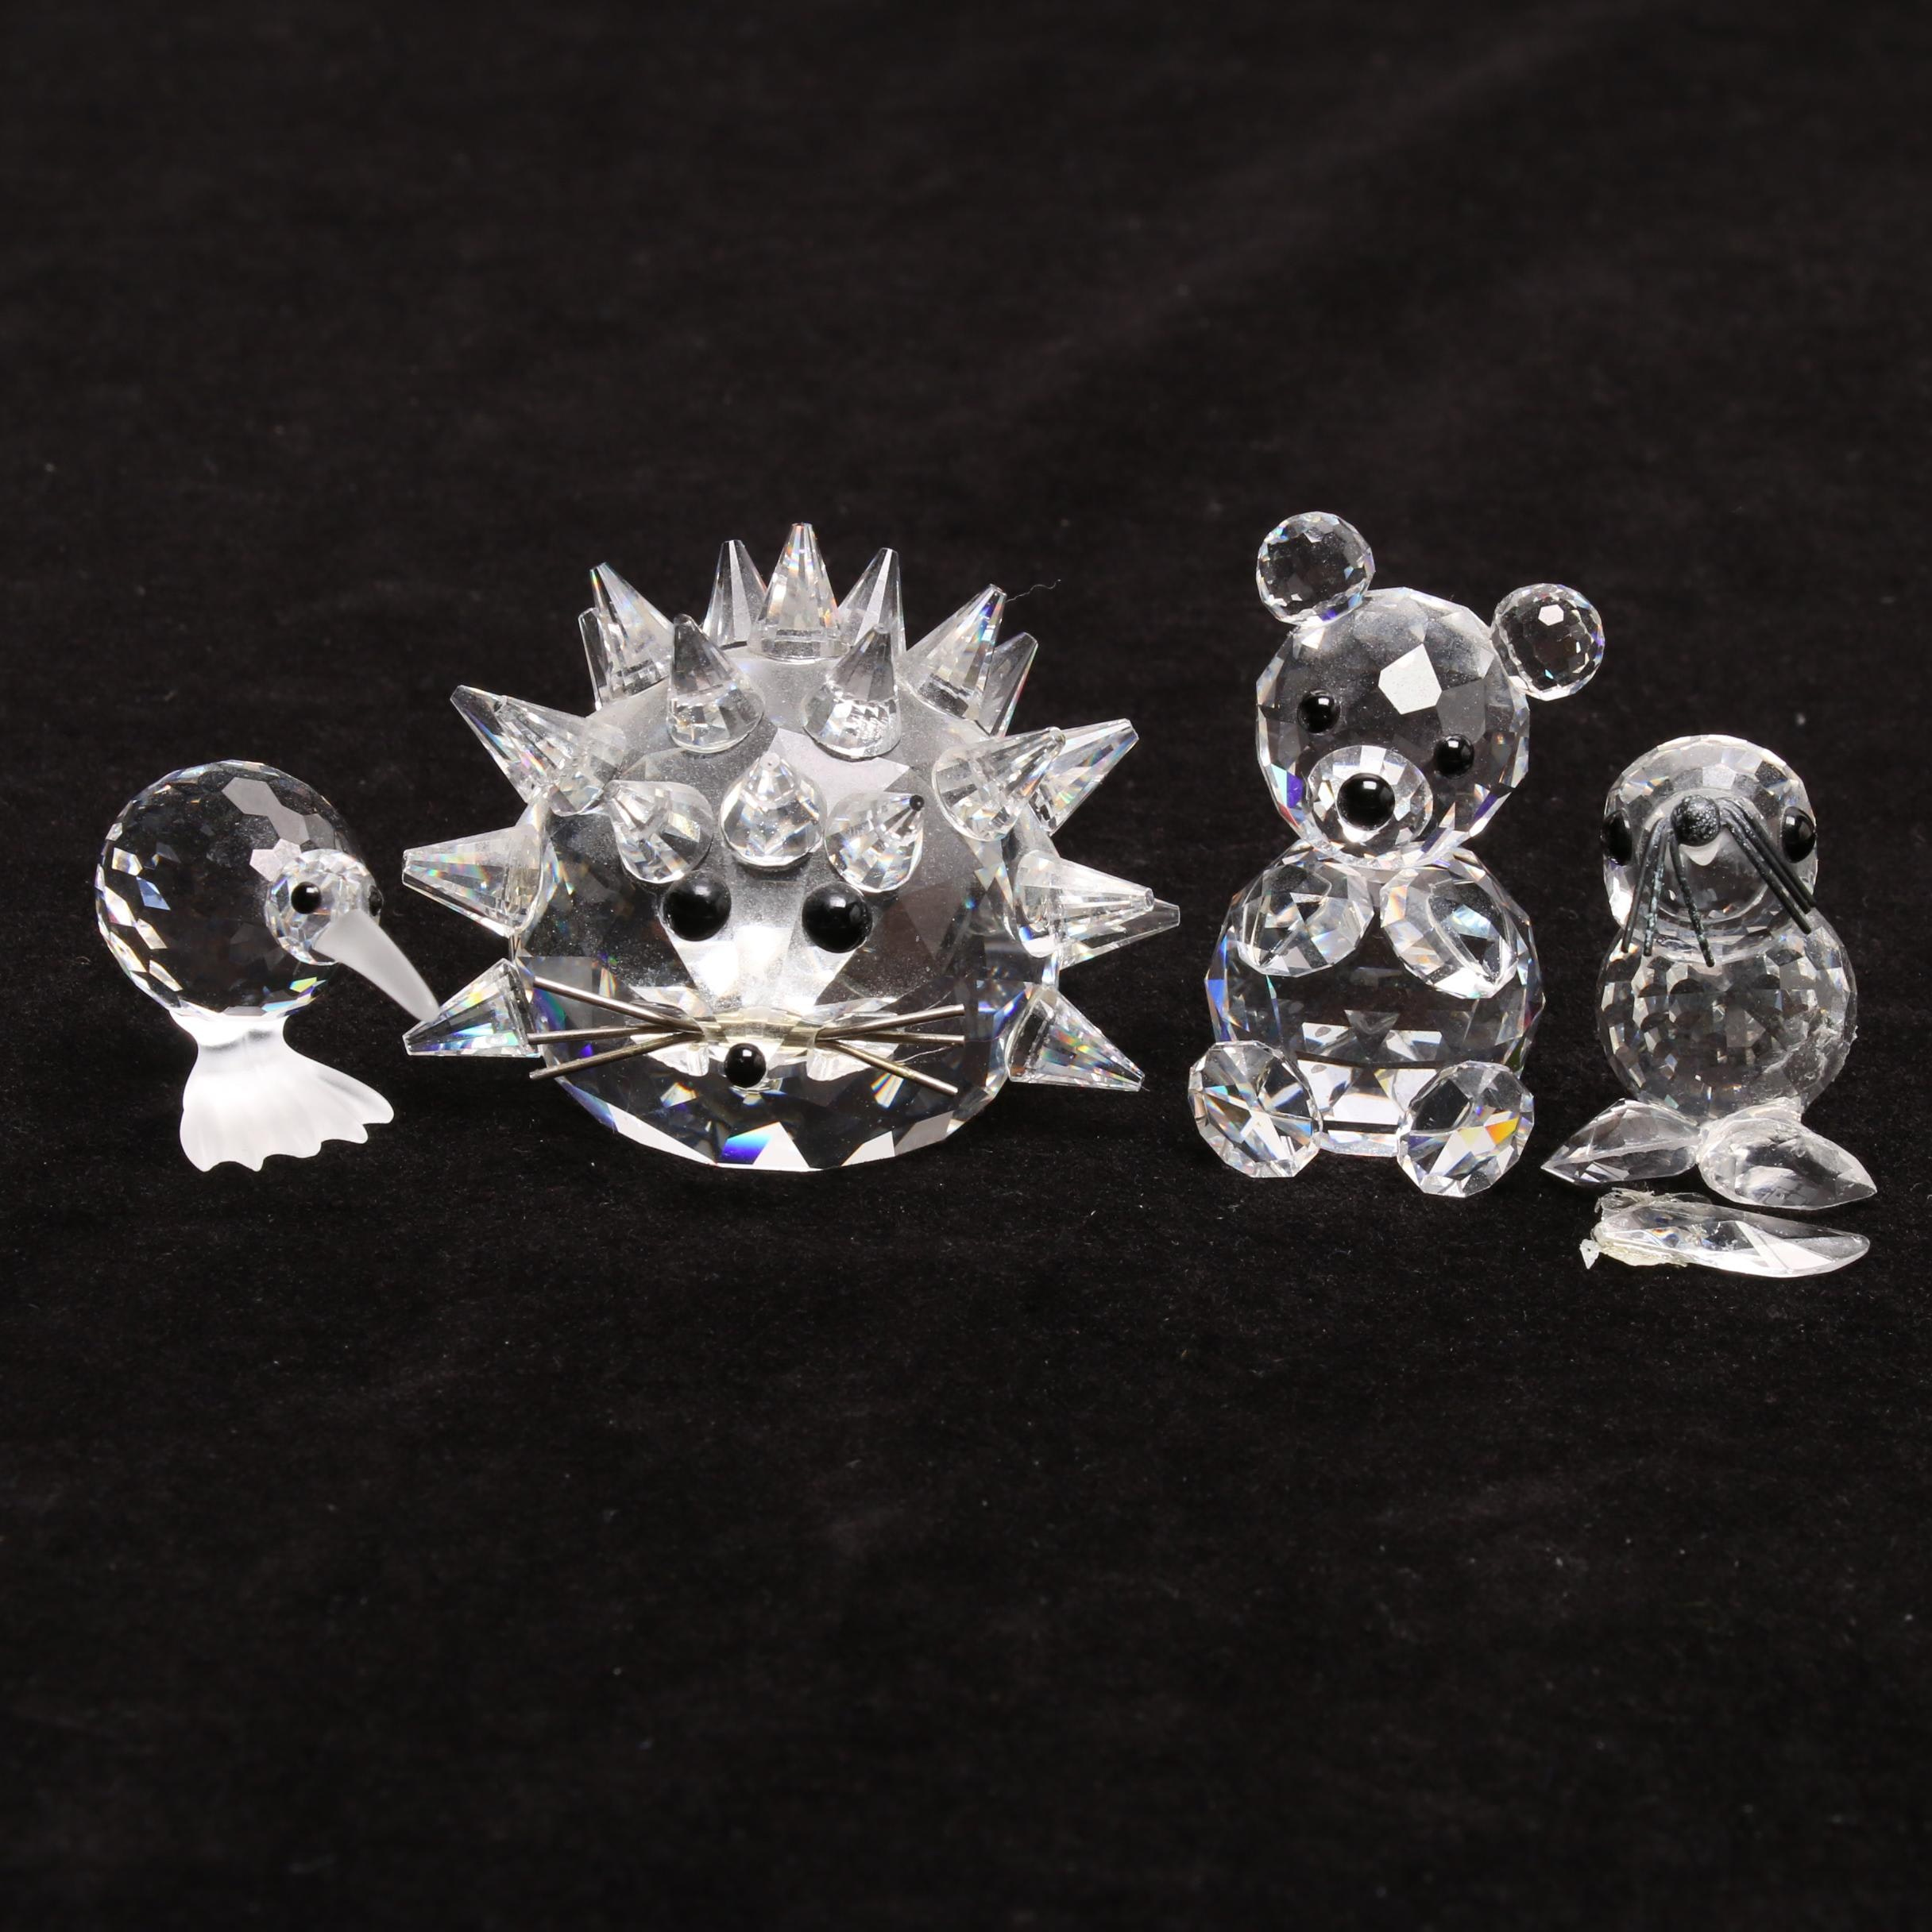 Swarovski Crystal Porcupine and Kiwi Figurines with a Bear and Seal